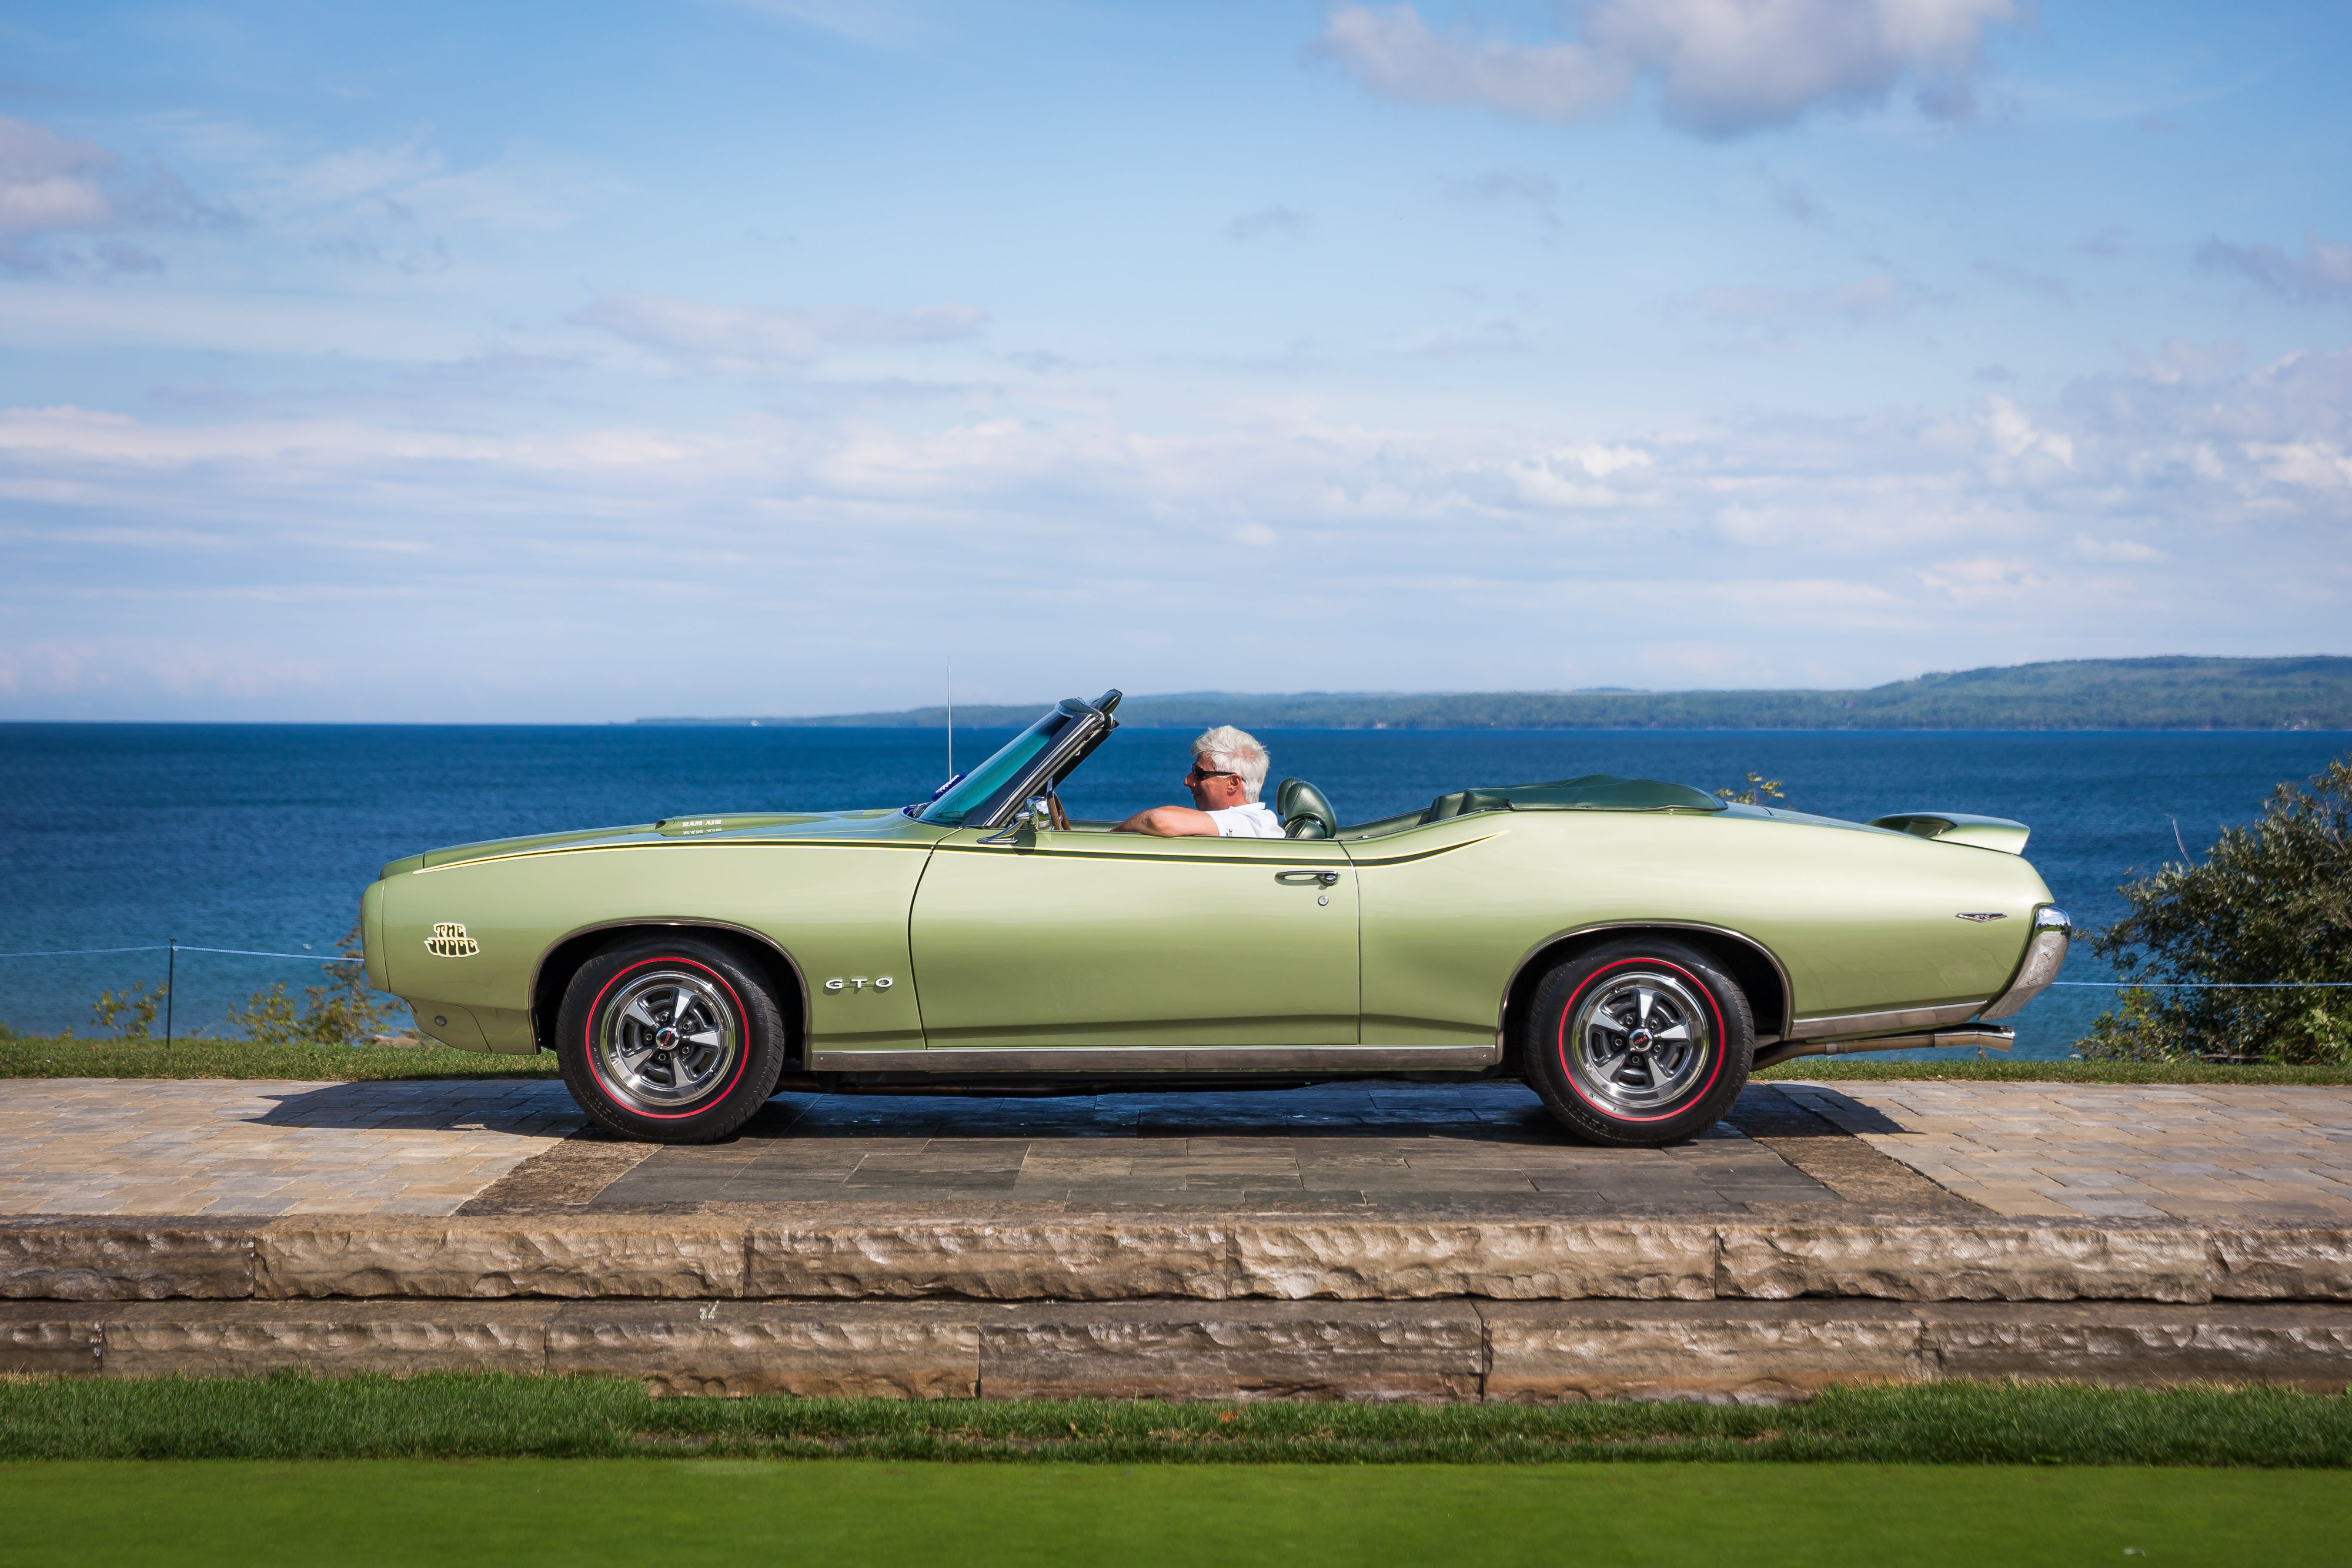 1969 Pontiac GTO Ram Air III Judge Convertible 1st